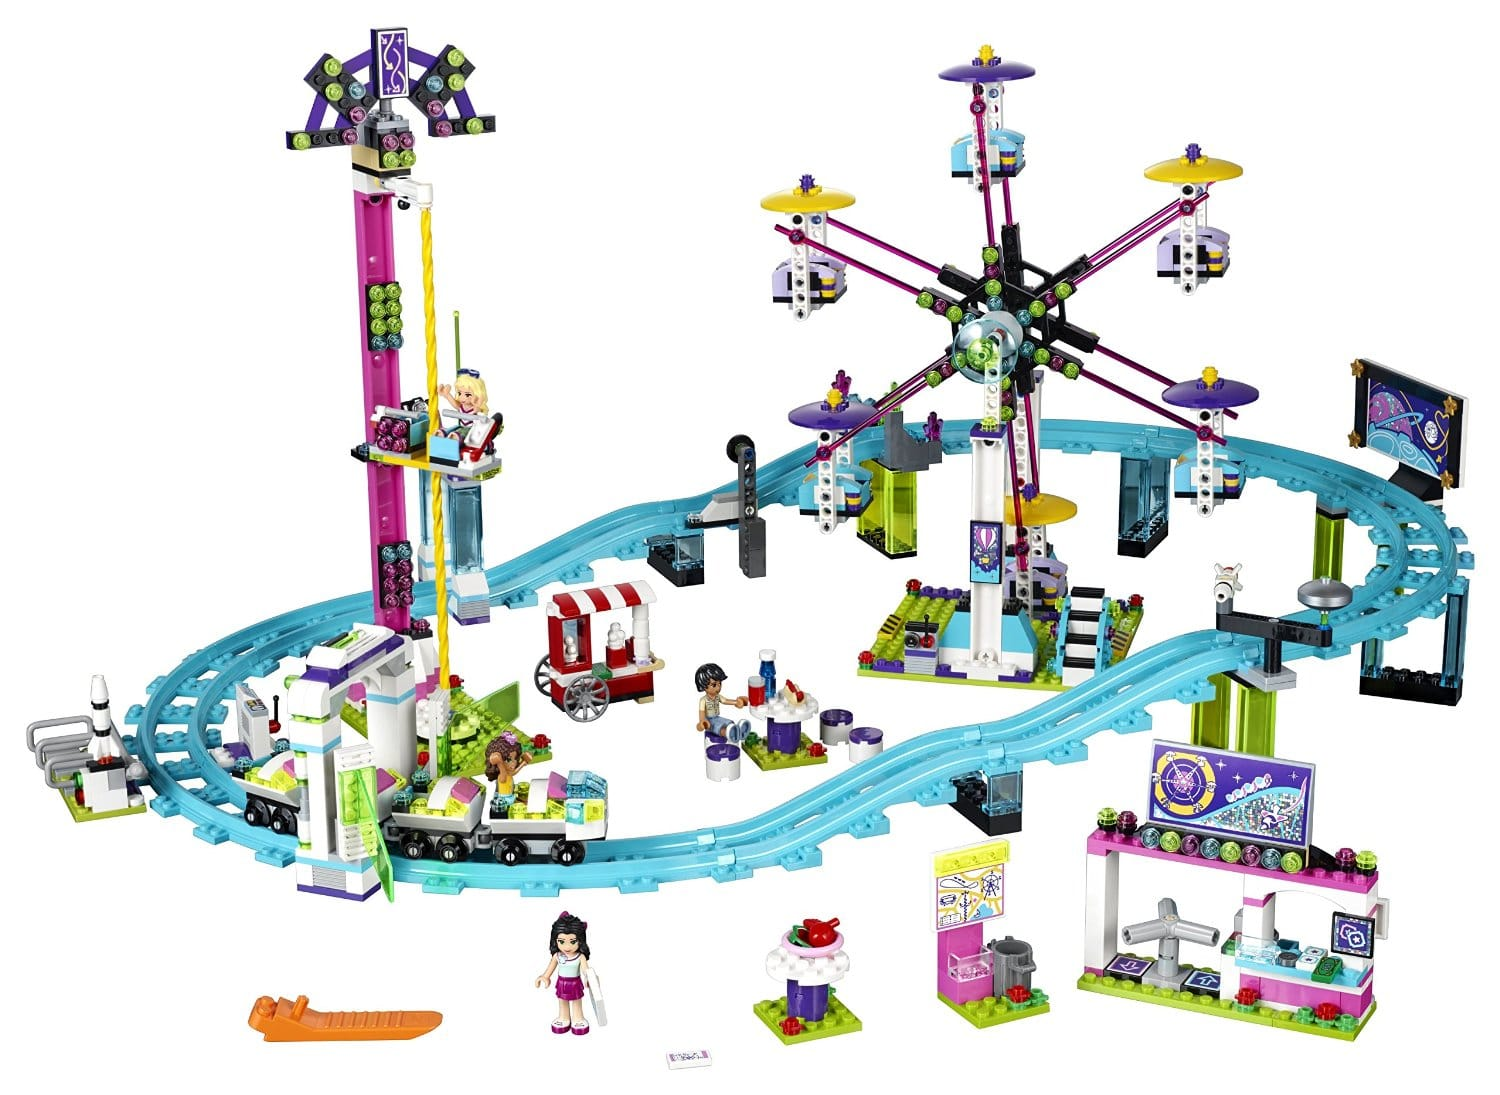 Gift ideas for 10 year old girl: Lego roller coaster